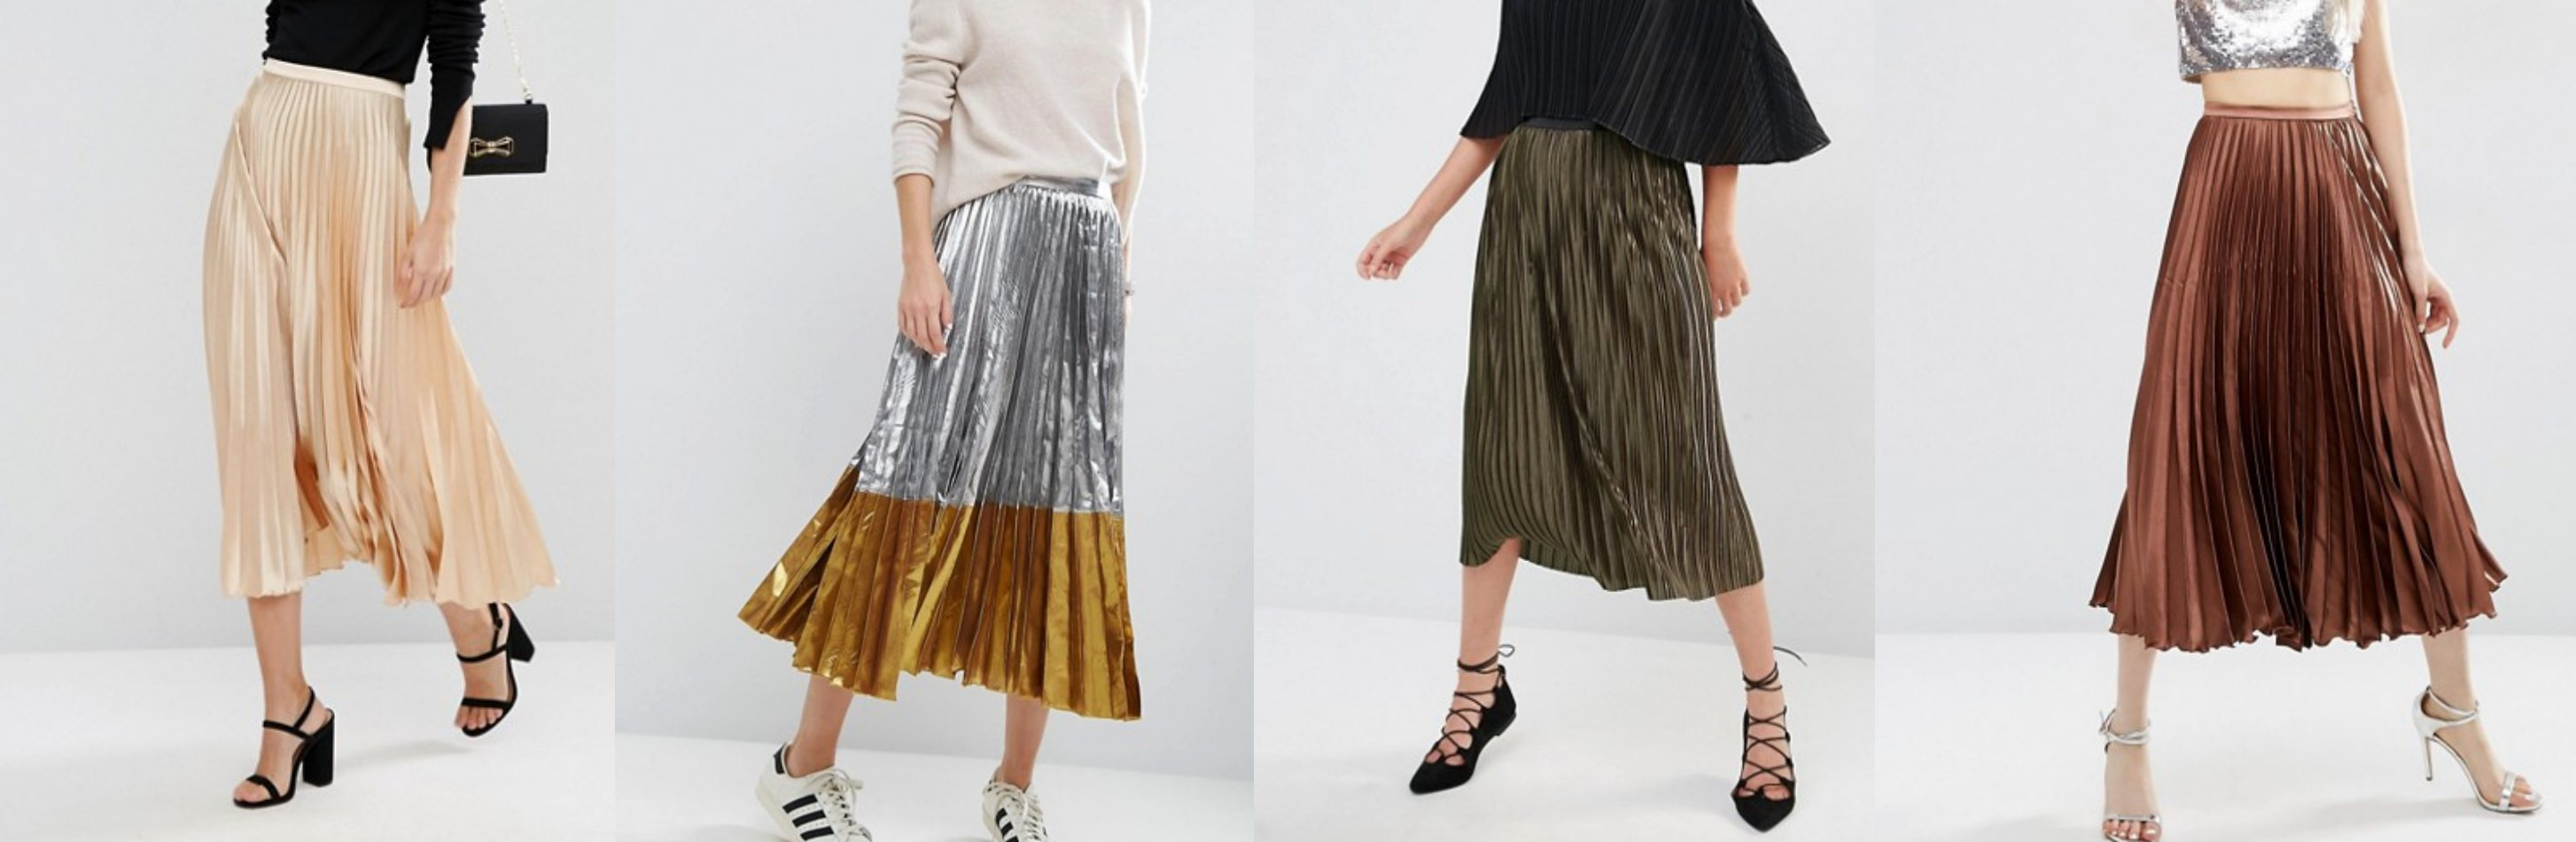 best-midi-skirt-outfits-for-fall